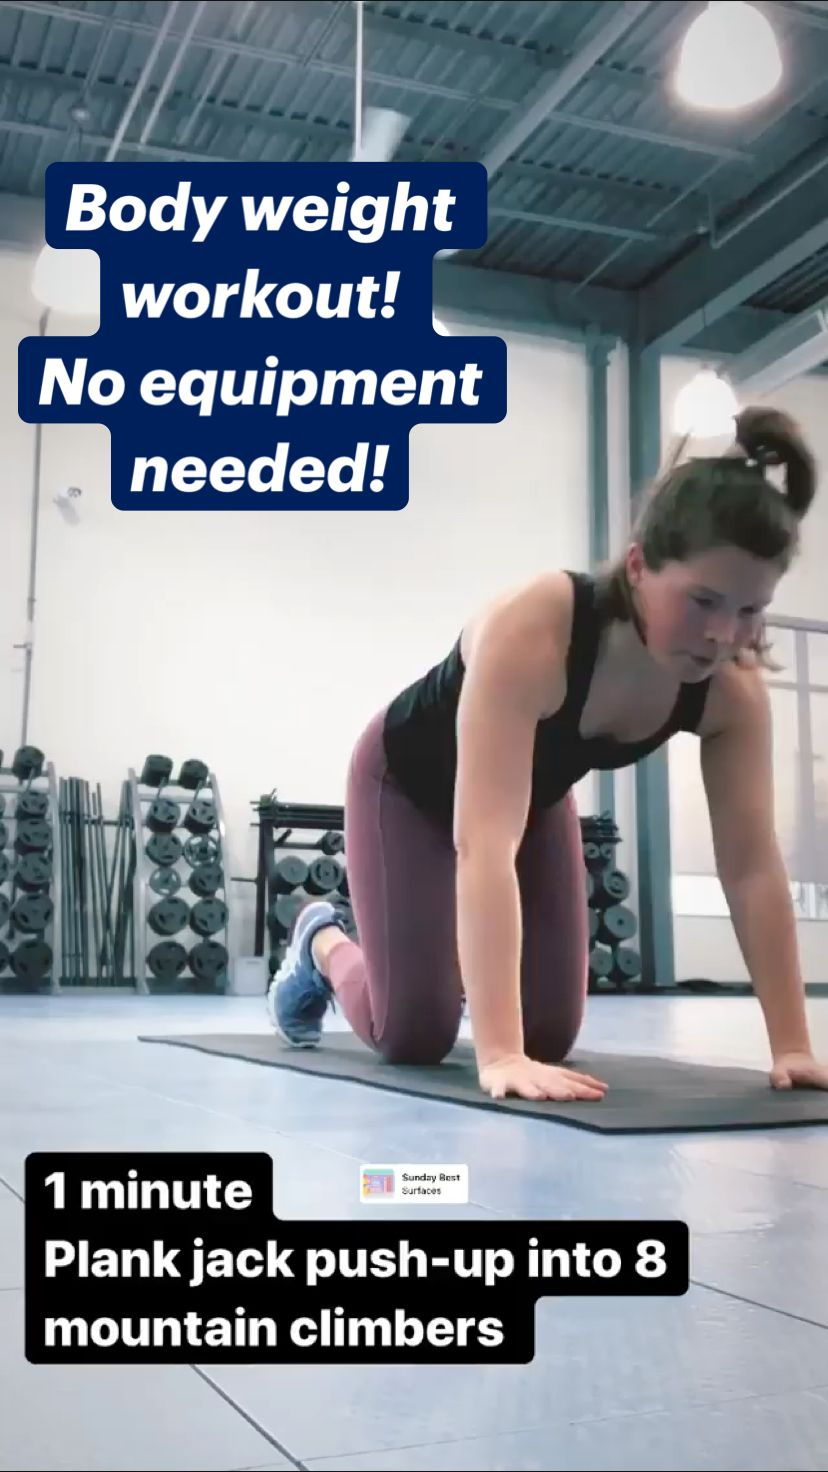 Body weight workout!  No equipment needed!